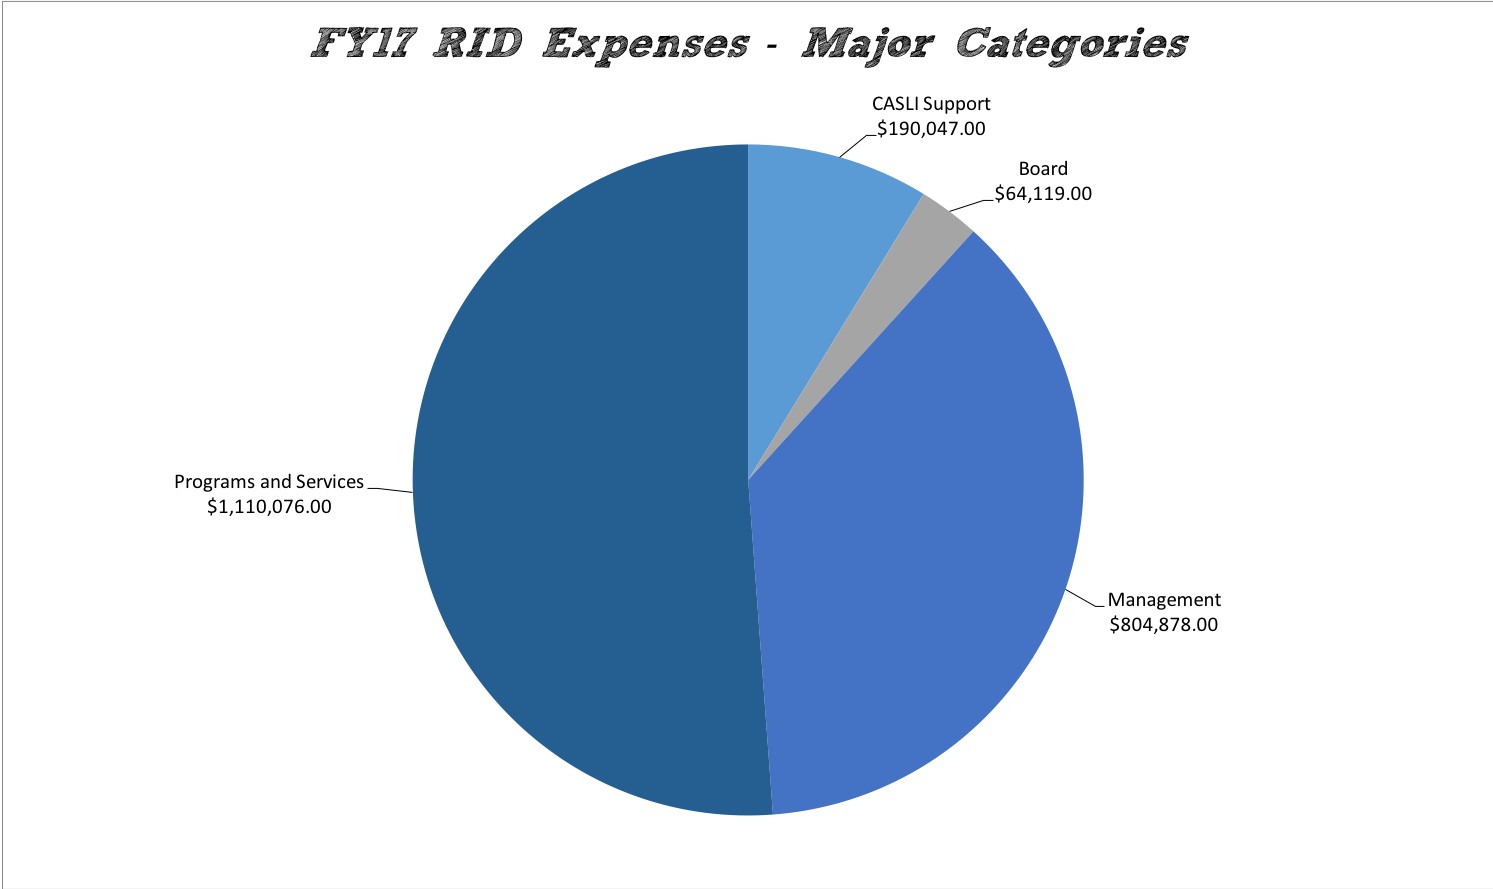 FY17 Major Expense Categories